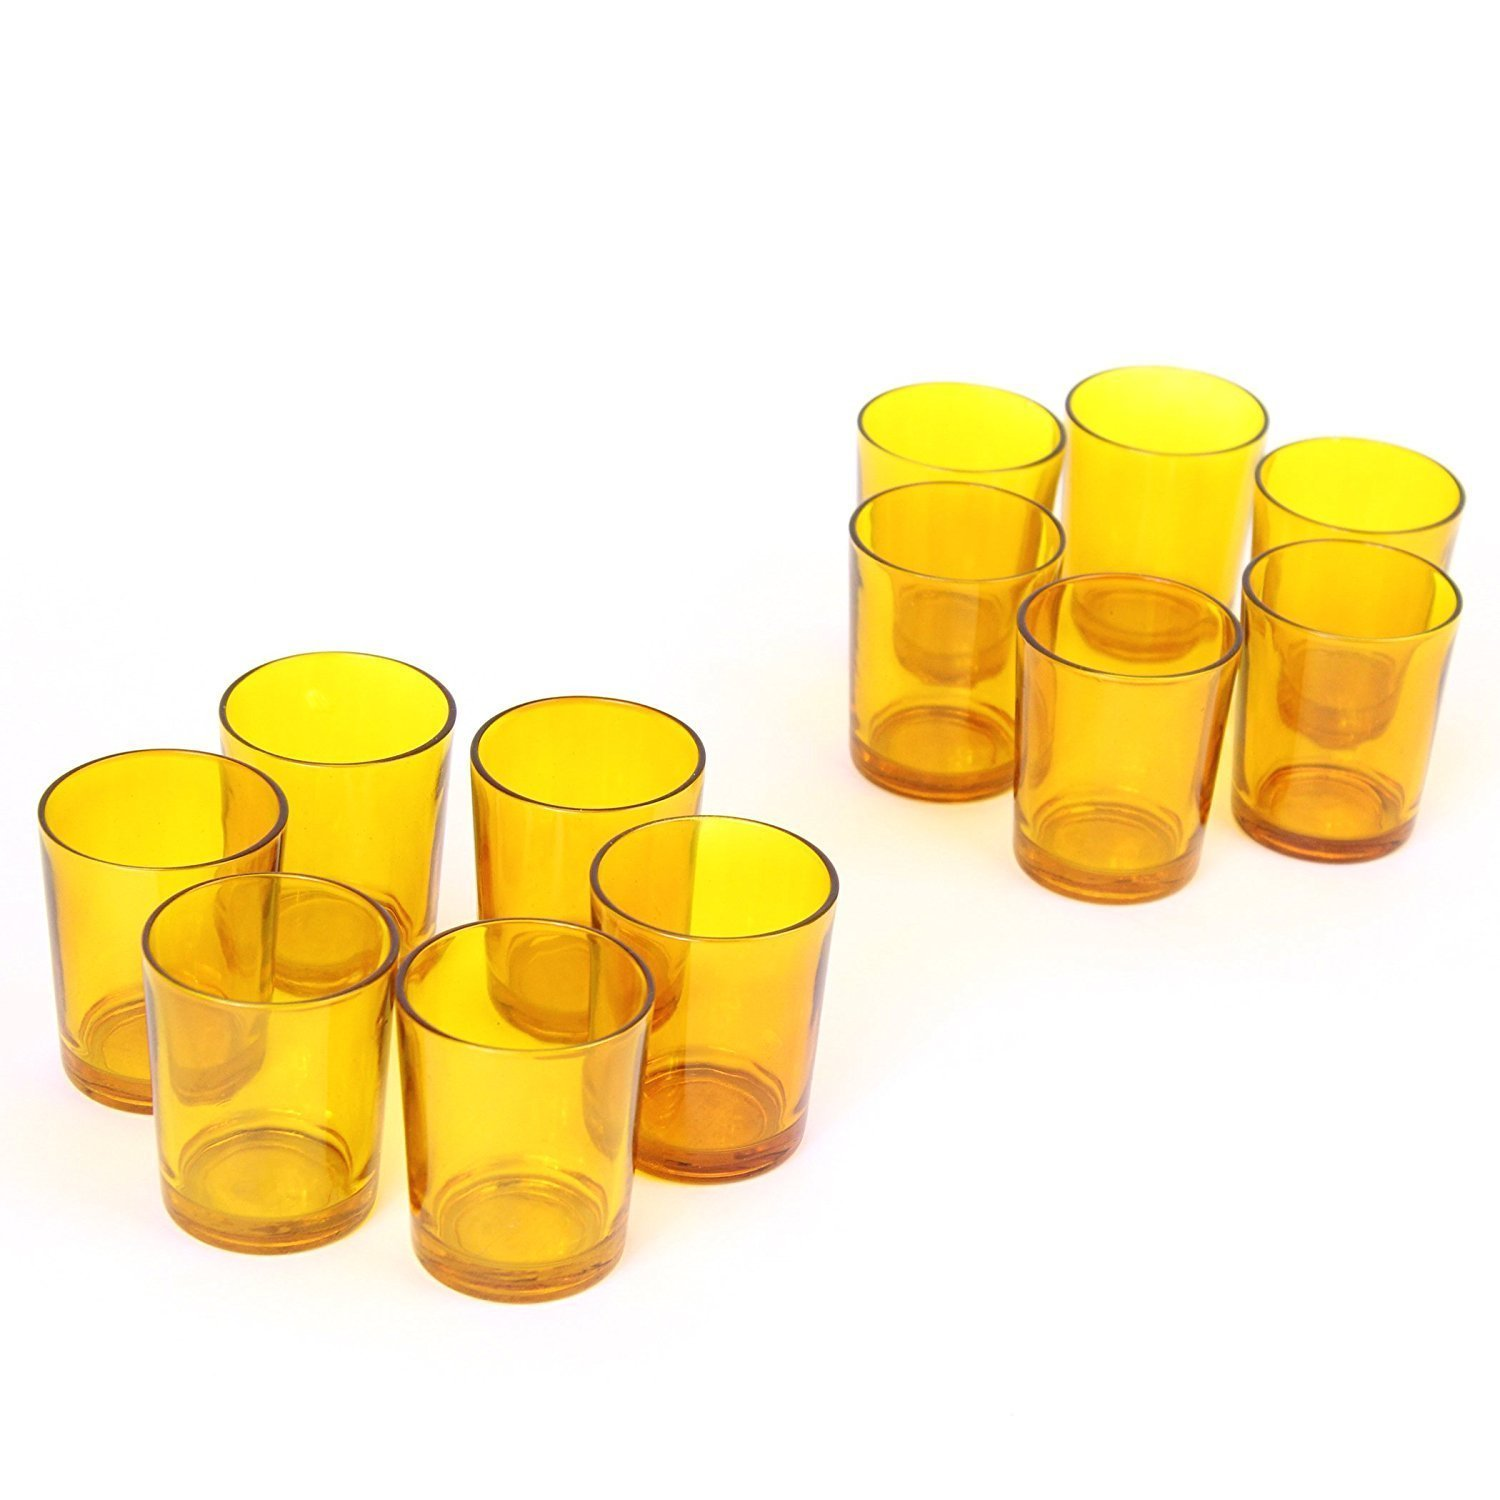 Hosley's Set of 12 Amber Glass LED Votive Candle, Tea Light Holders. Ideal for Weddings, Parties, Spa & Aromatherapy. Great Value. Use with Hosley LED Tea Lights and Votive's. Bulk Buy HG Global FBA_FBA-G45655ON-1-EA